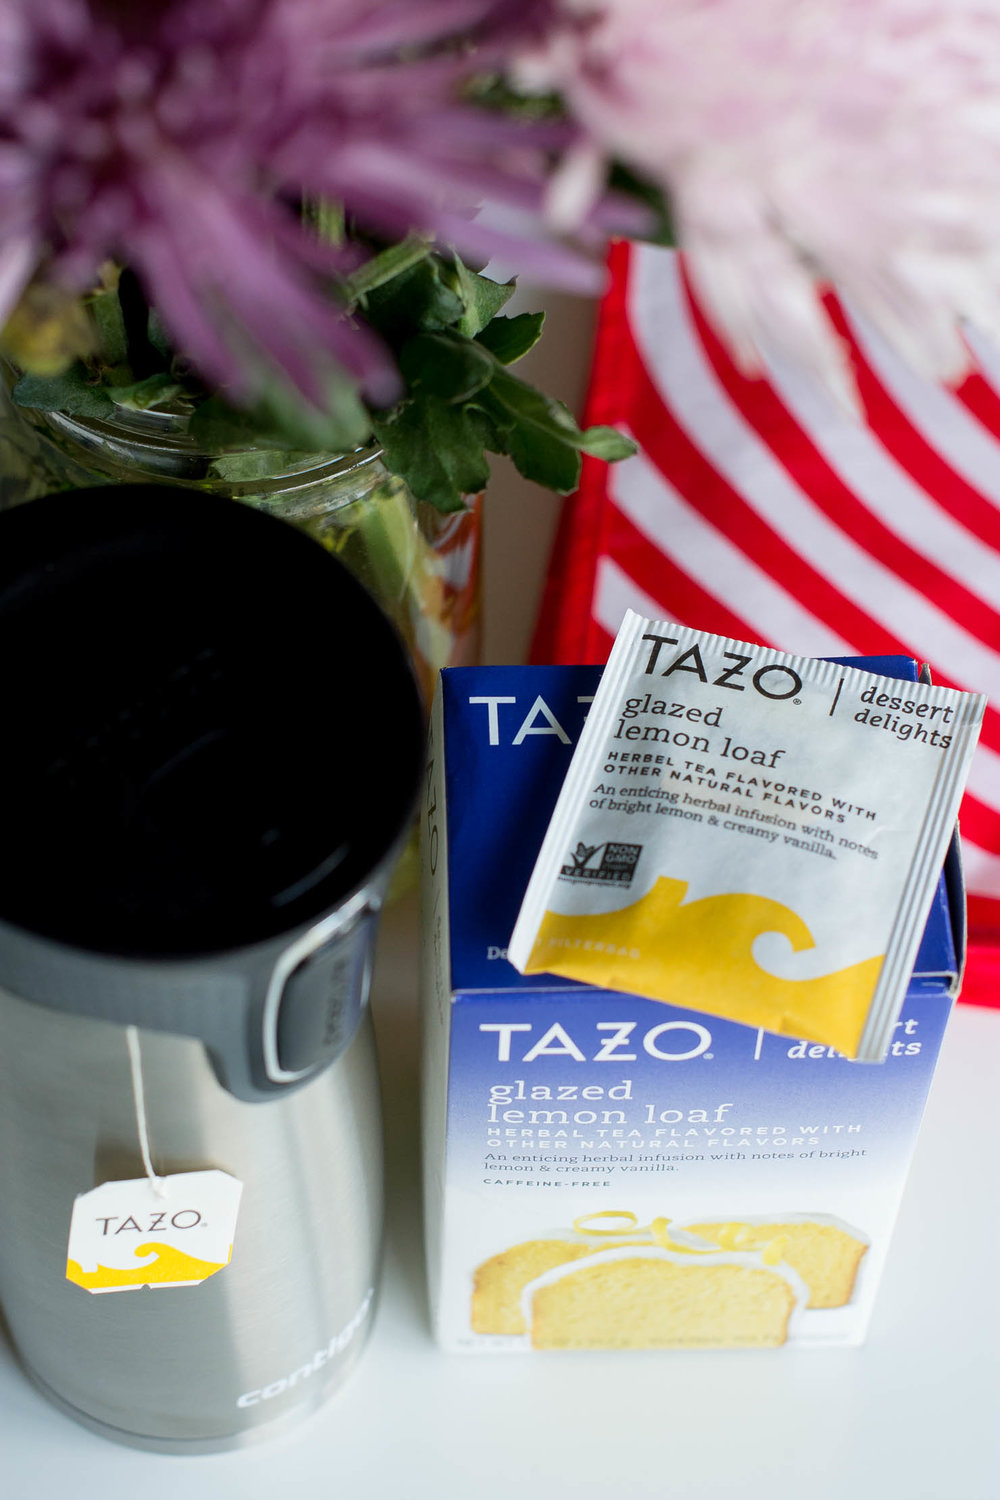 contigo-autoseal-west-loop-travel-mug-tazo-dessert-delight-teas-how-contigo-and-tazo-teas-get-me-through-the-day-4.jpg